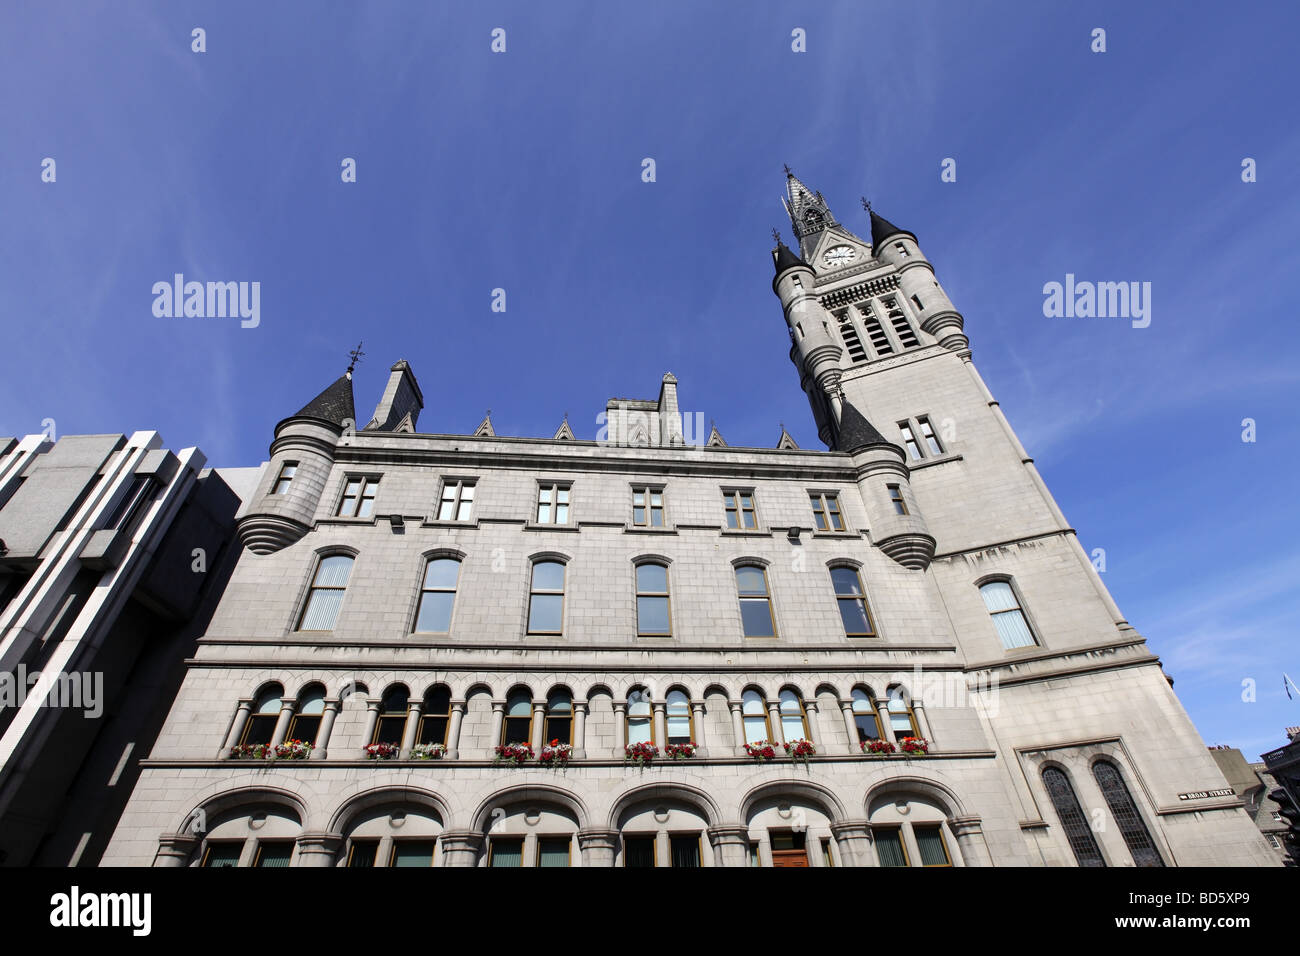 The imposing grey granite building of the Town House in Aberdeen, Scotland, UK which also houses the sheriff court - Stock Image